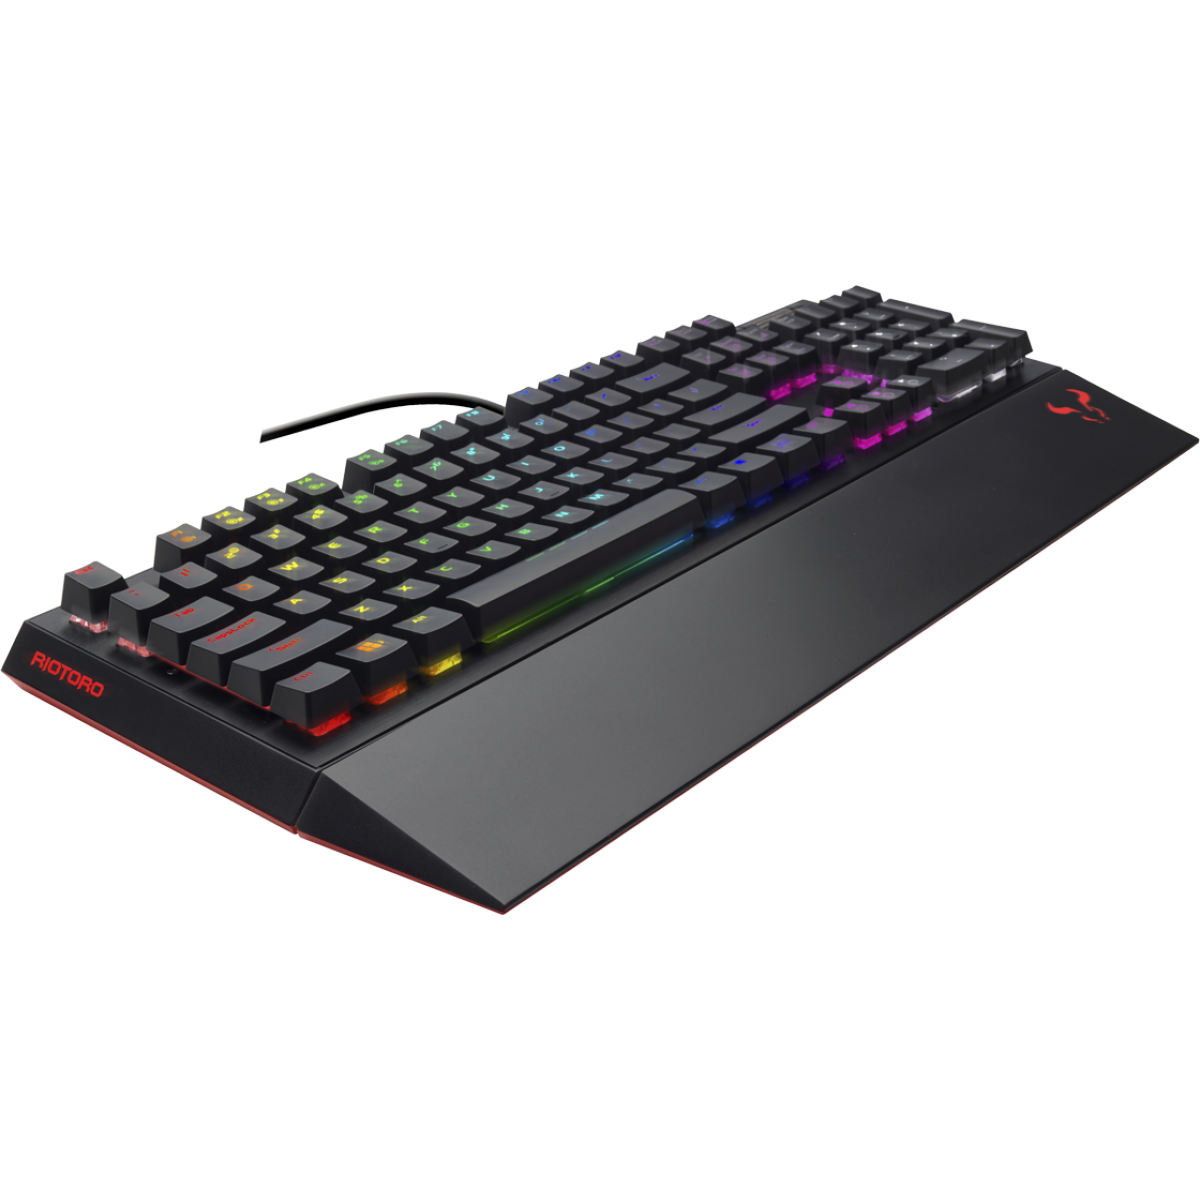 Teclado Mecânico Riotoro, Ghostwriter Prism RGB, Cherry MX Blue, RGB, Black, KR710-XP